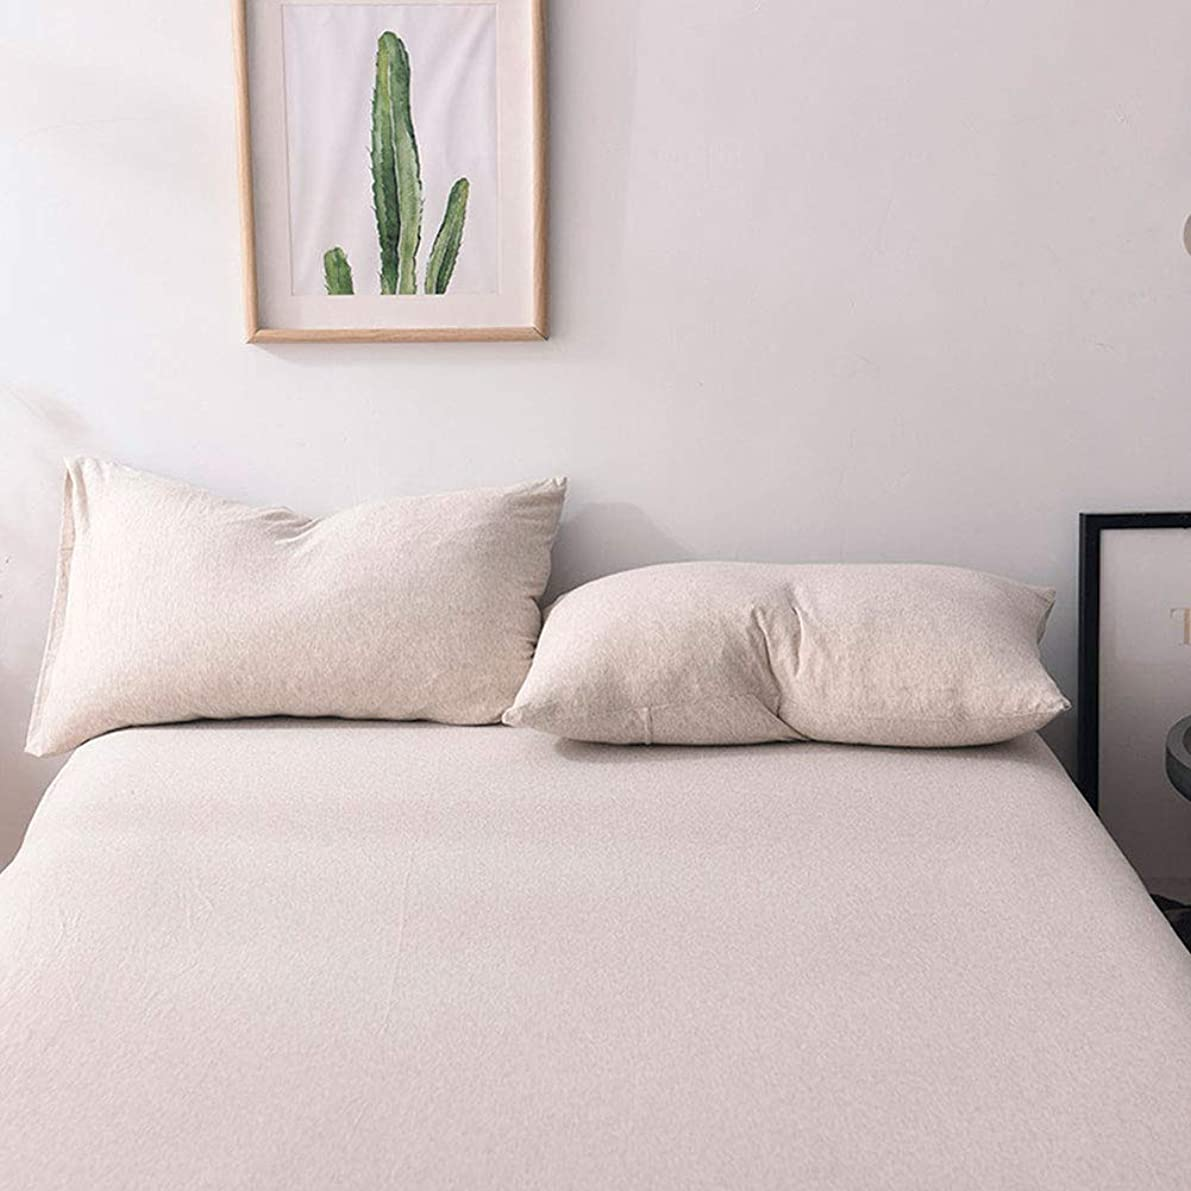 MisDress Jersey Knit Cotton 2 Pieces Pillow Cases Super Soft and Breathable(Queen, Light Coffee)